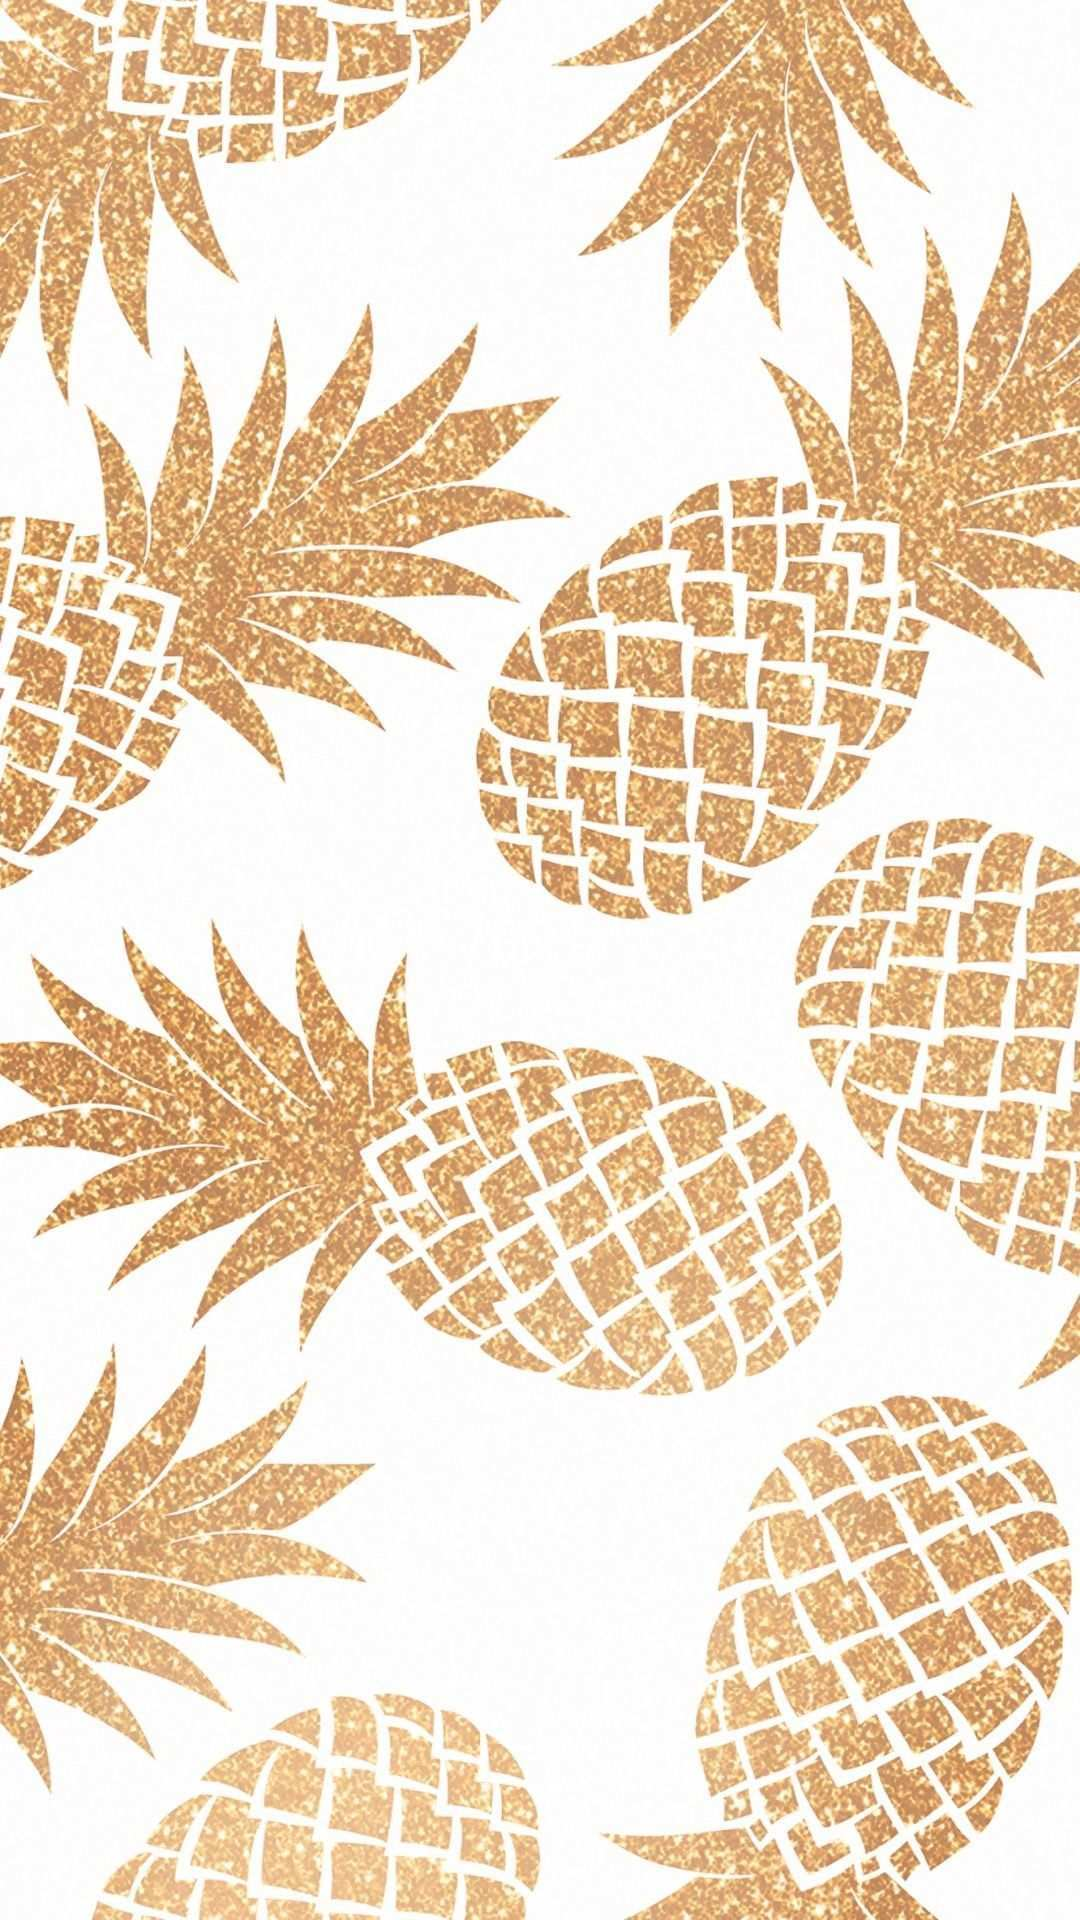 Wallpapers Iphone Iphonewallpapers Pineapple Wallpaper August Wallpaper Pattern Wallpaper